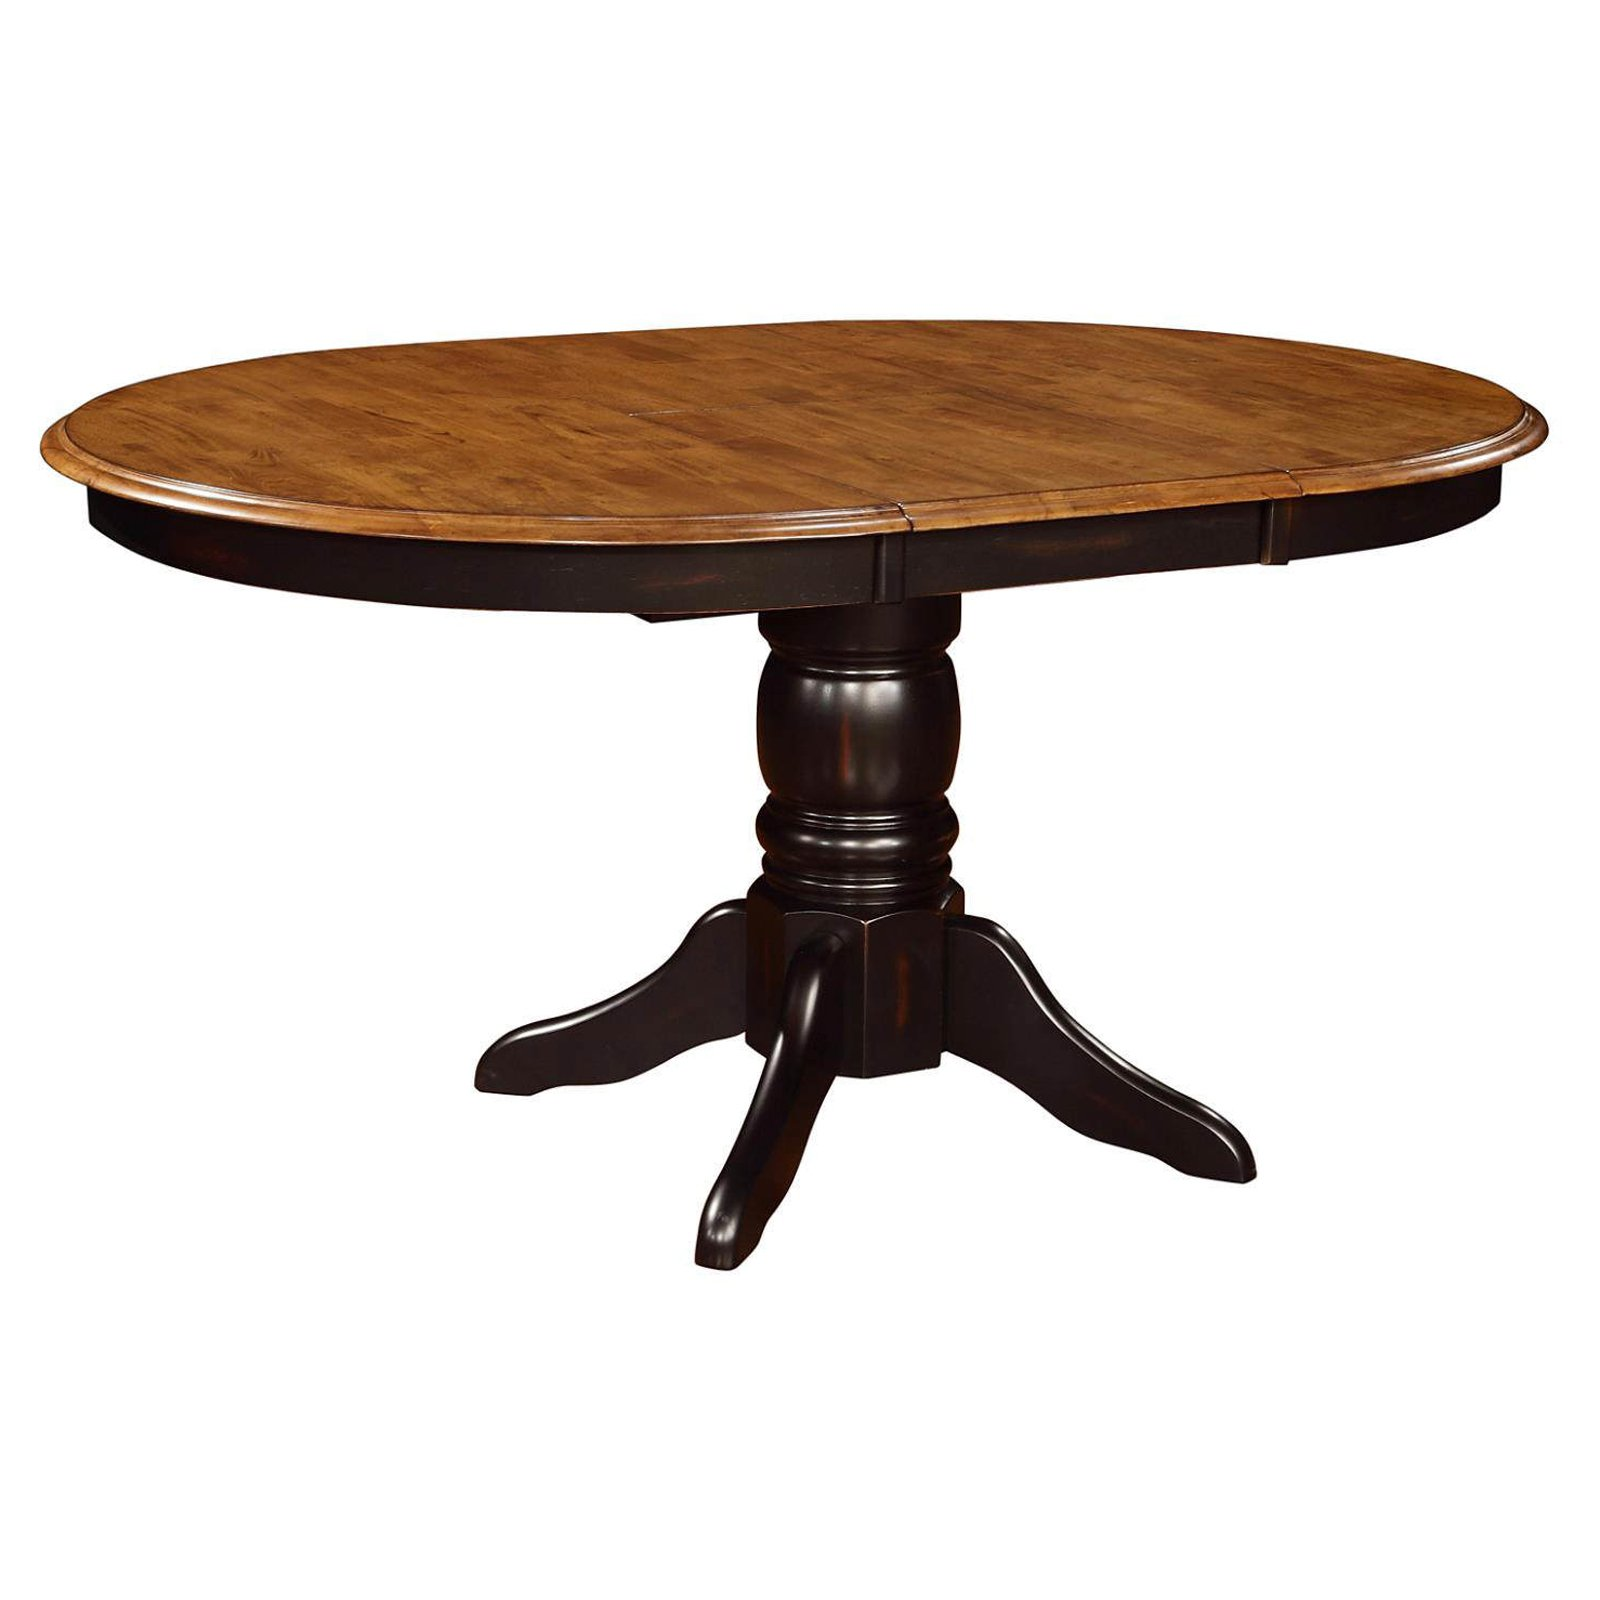 Chelsea Home Vahn Pedestal Dining Table by Chelsea Home Furniture LLC.